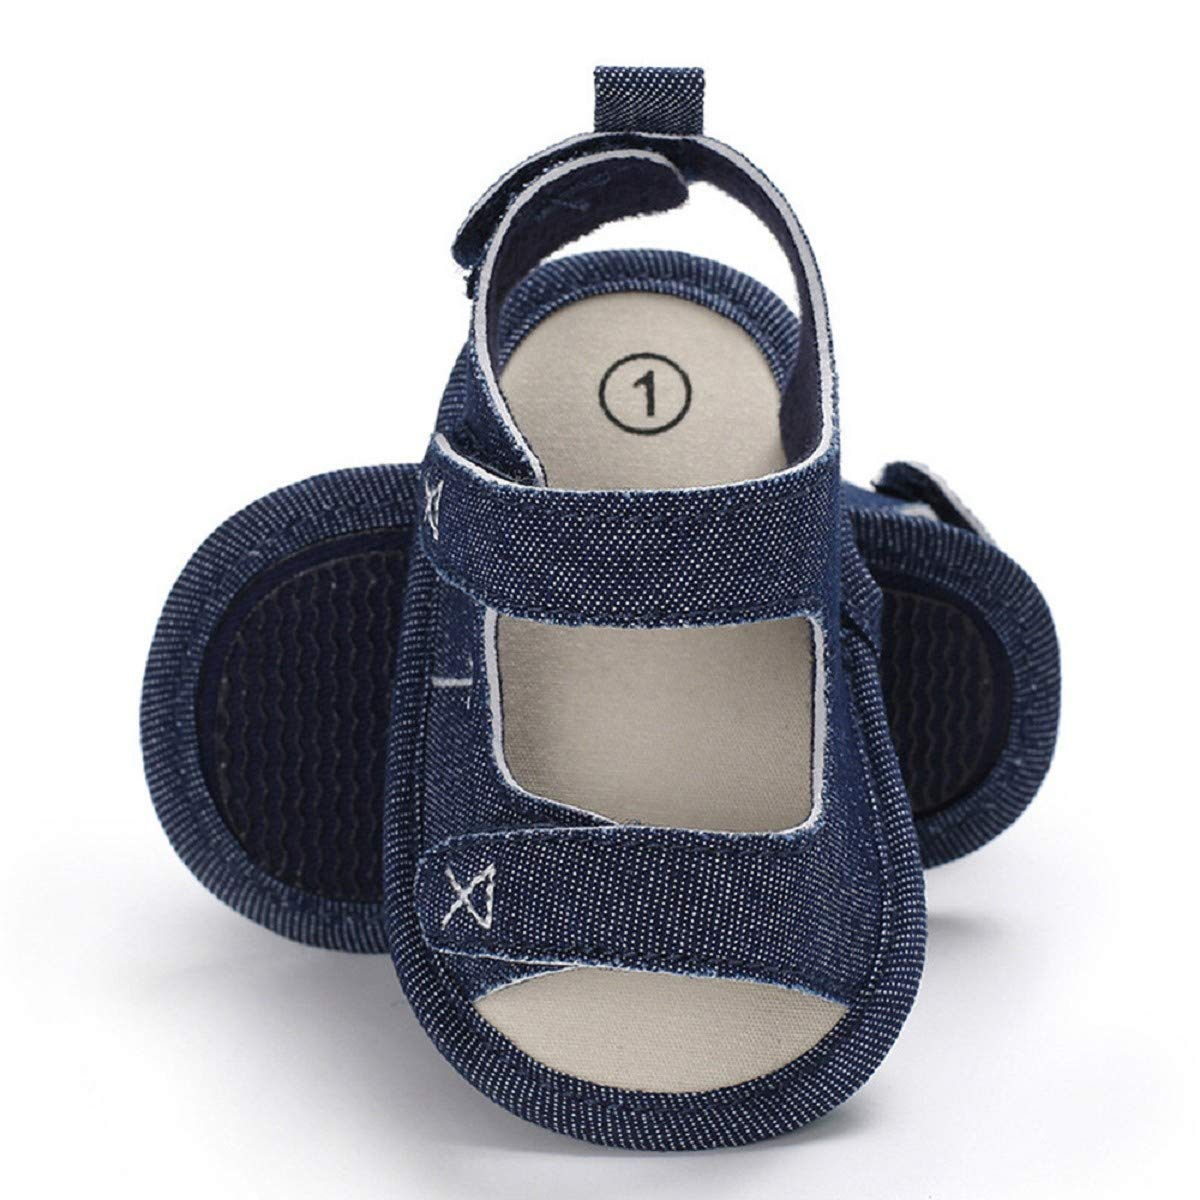 Infant Sandals FAPIZI Toddler Newborn Baby Boys Girls Embroidery Casual Soft Sole Anti-Slip Canvas Shoes